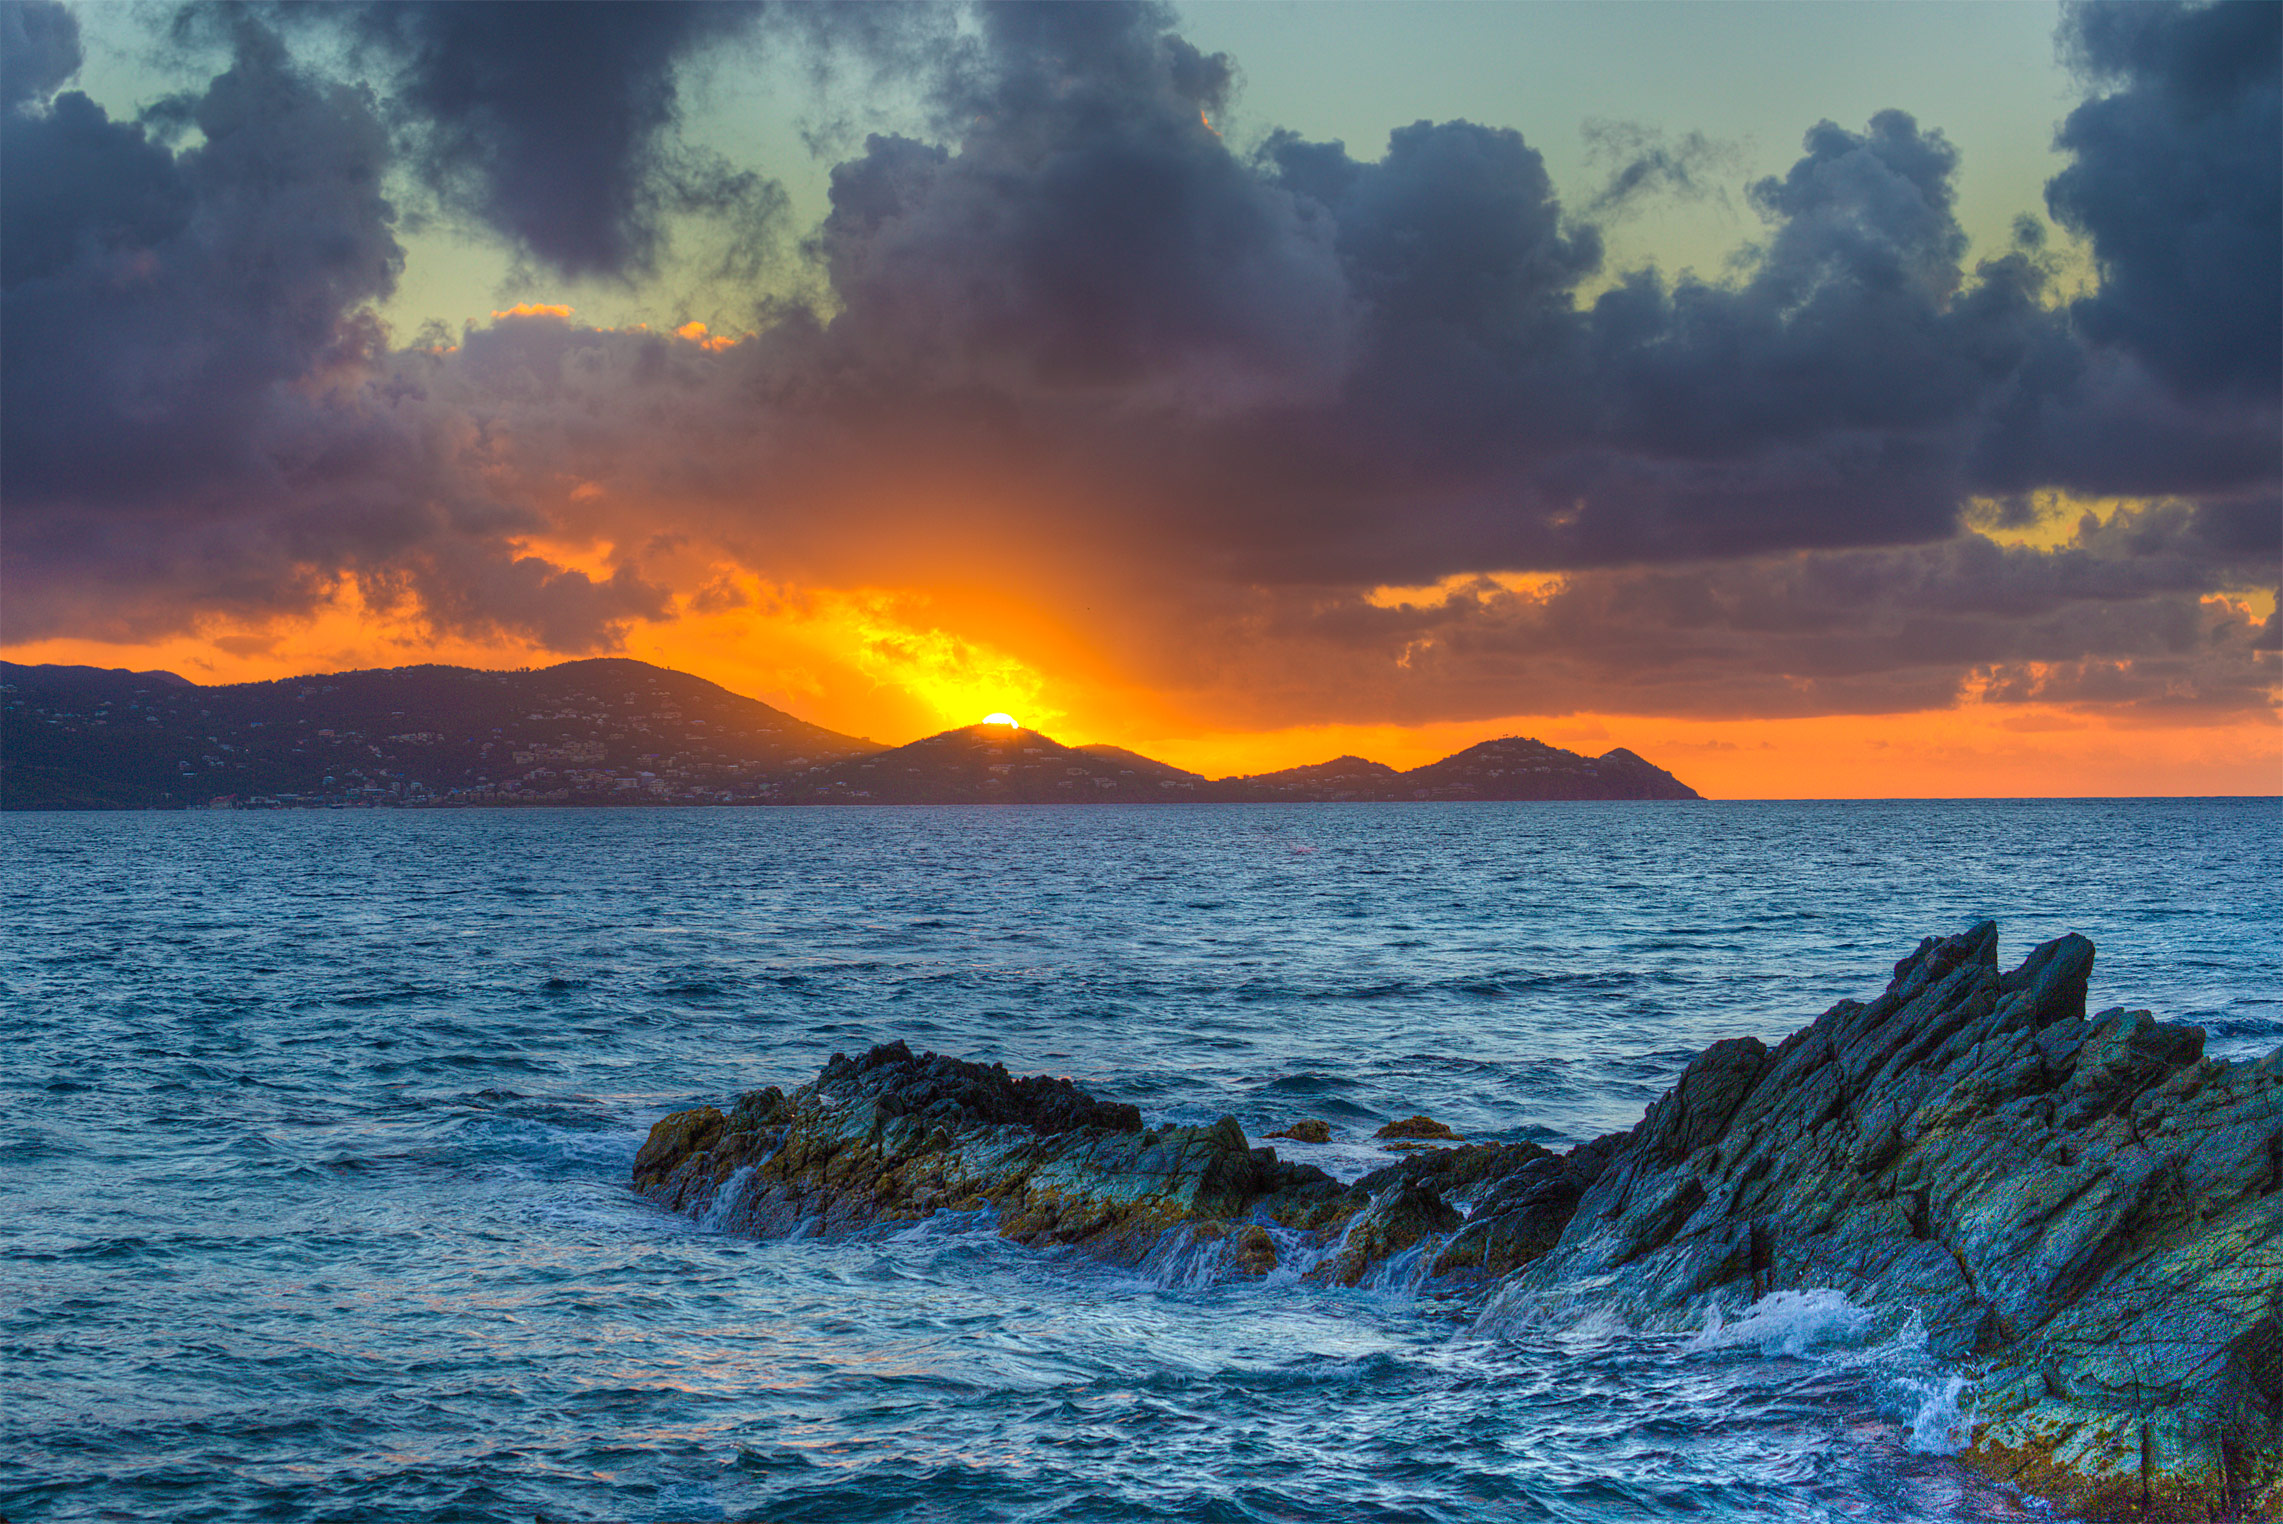 The sun sets over St. John